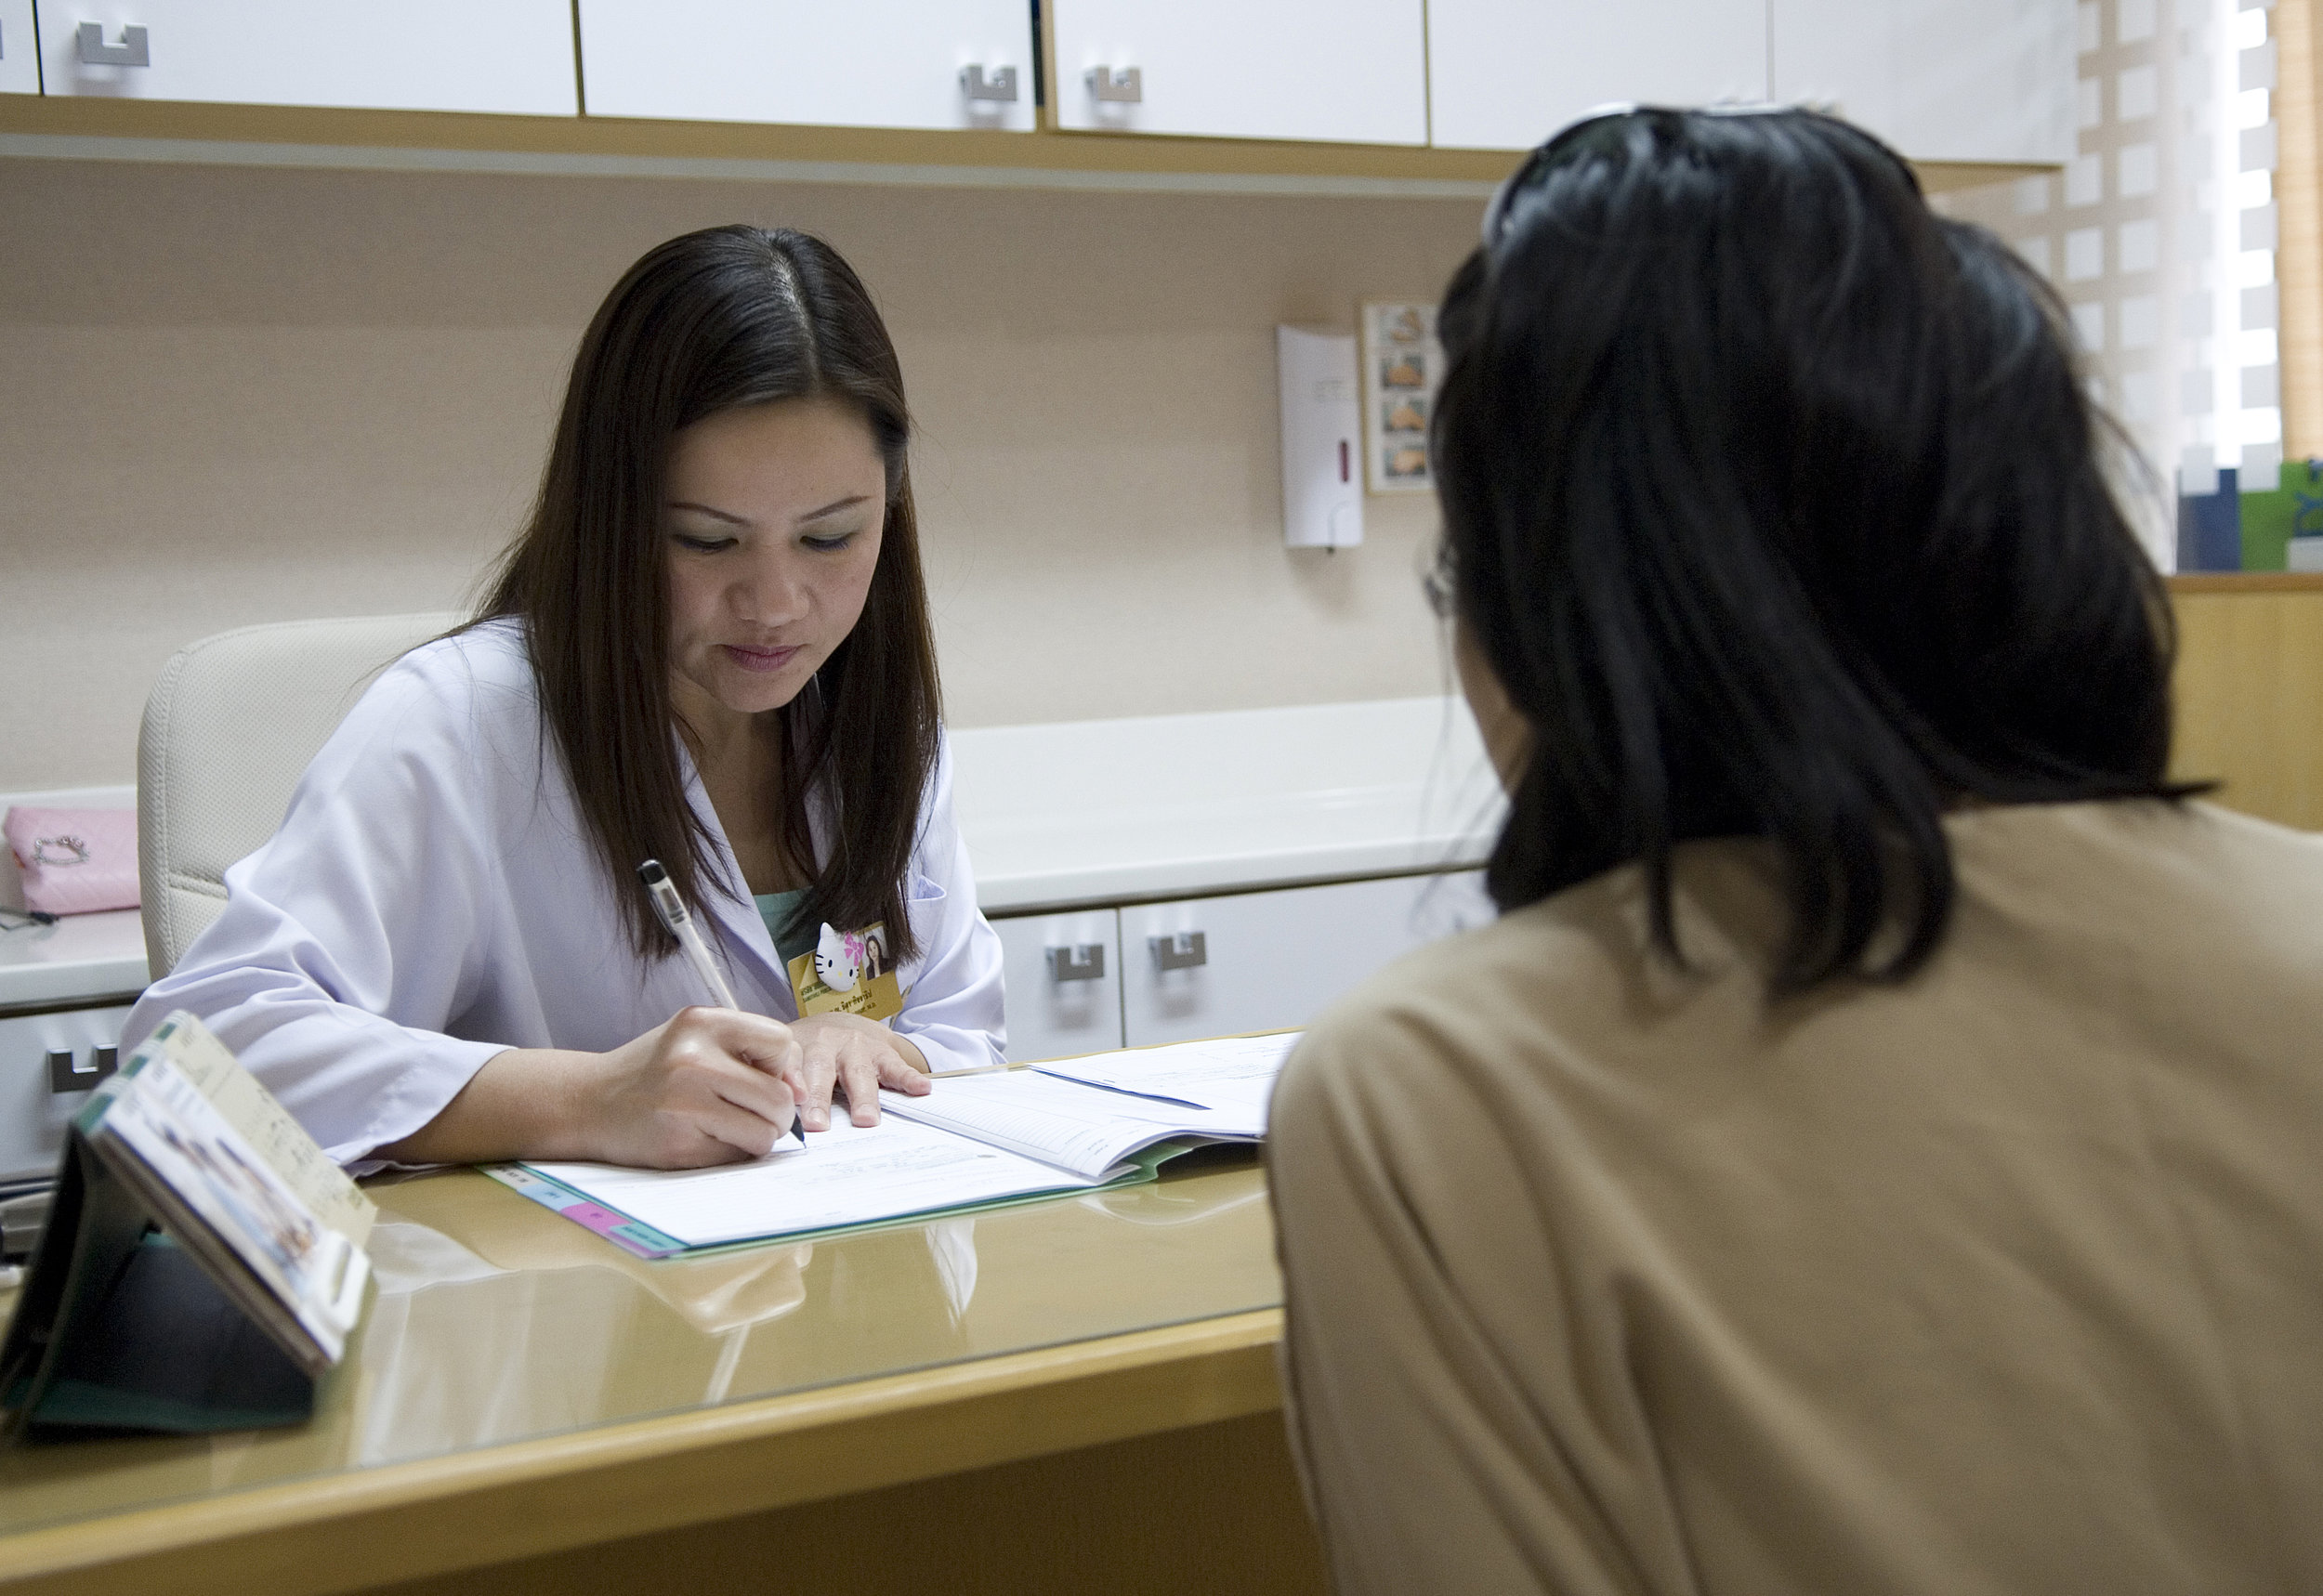 Female patients can ask their medical professional how prescribed medications were tested prior to approval.   ILO/Thierry Falise/Flickr  (CC BY-NC-ND 2.0)